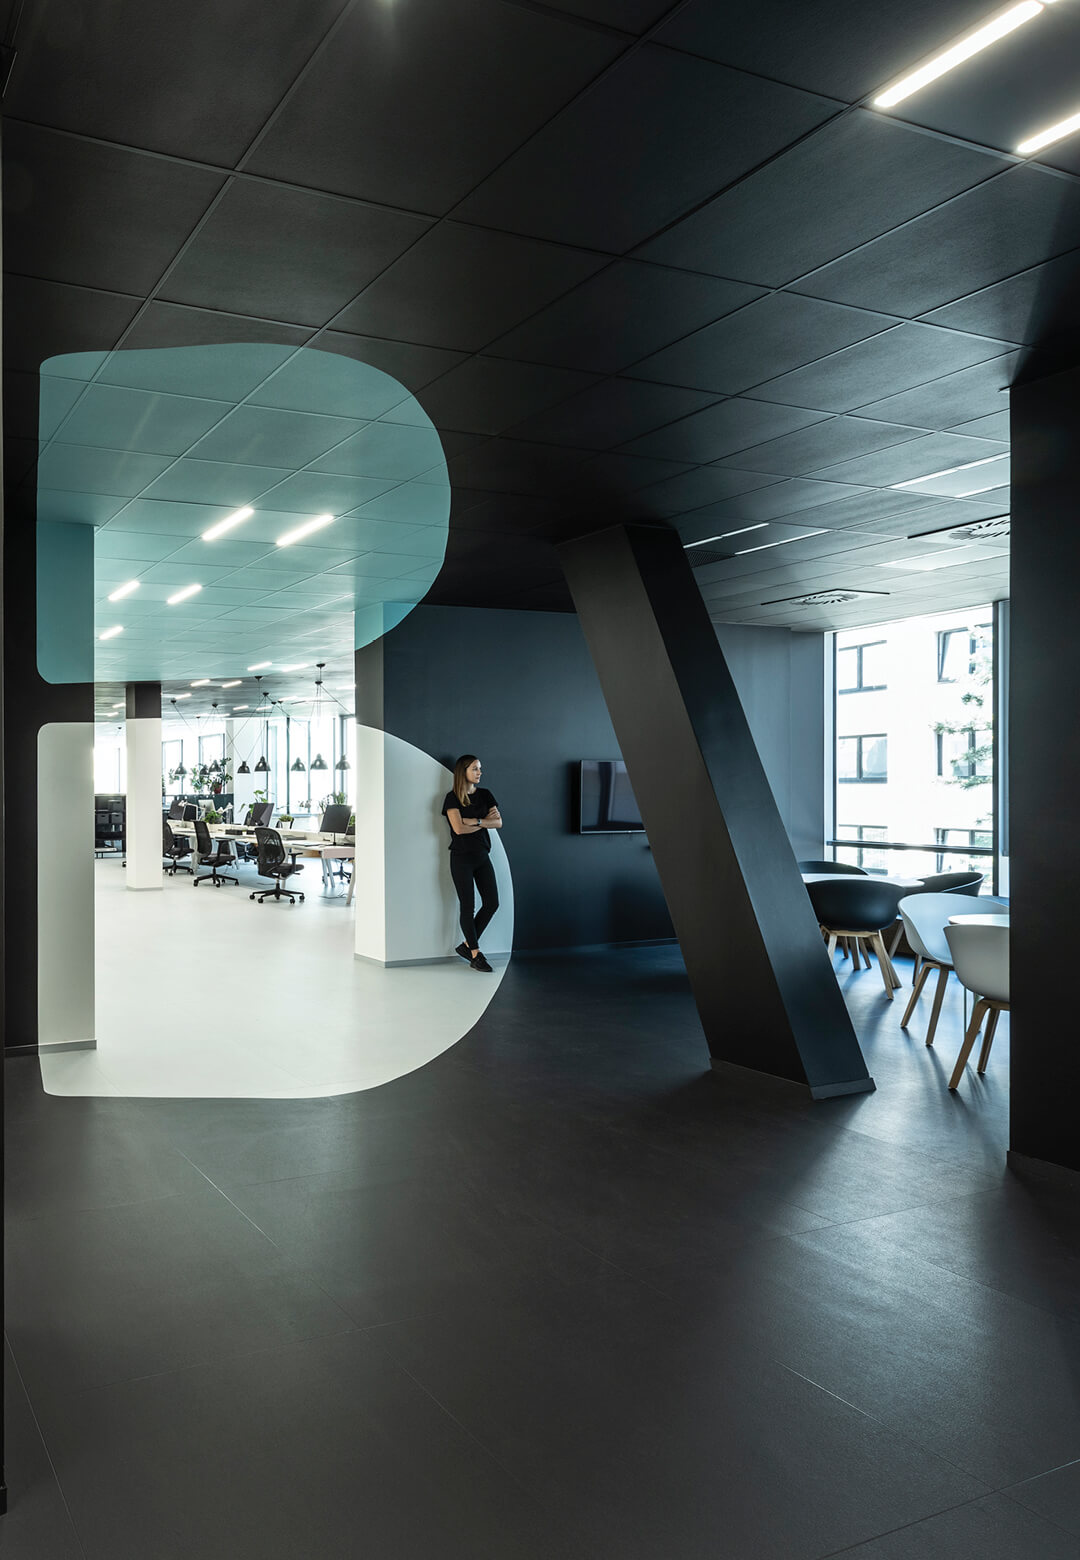 B2 Architecture designs a bright office for DDB in Prague   DDB Prague office by B2 Architecture   STIRworld